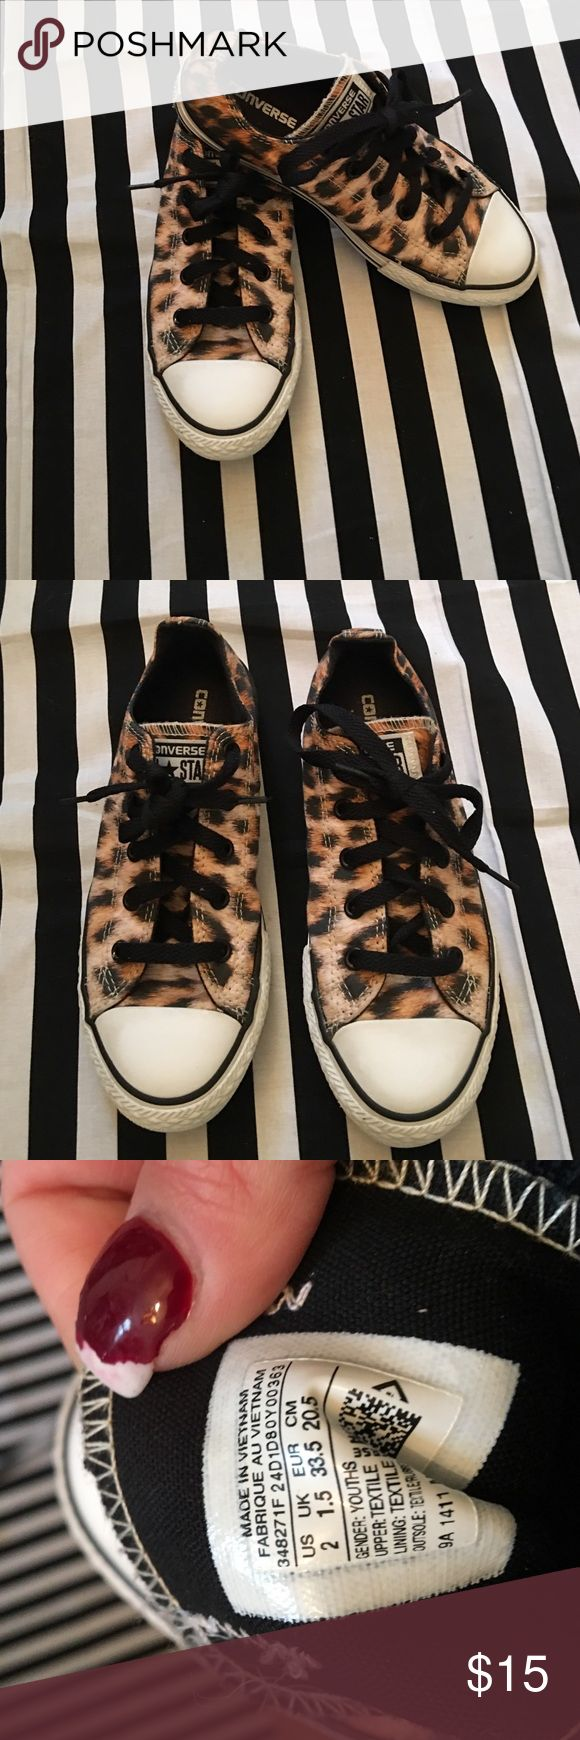 Girls size 2 leopard converse all stars Good condition!! Size 2 leopard converse all stars. Converse Shoes Sneakers